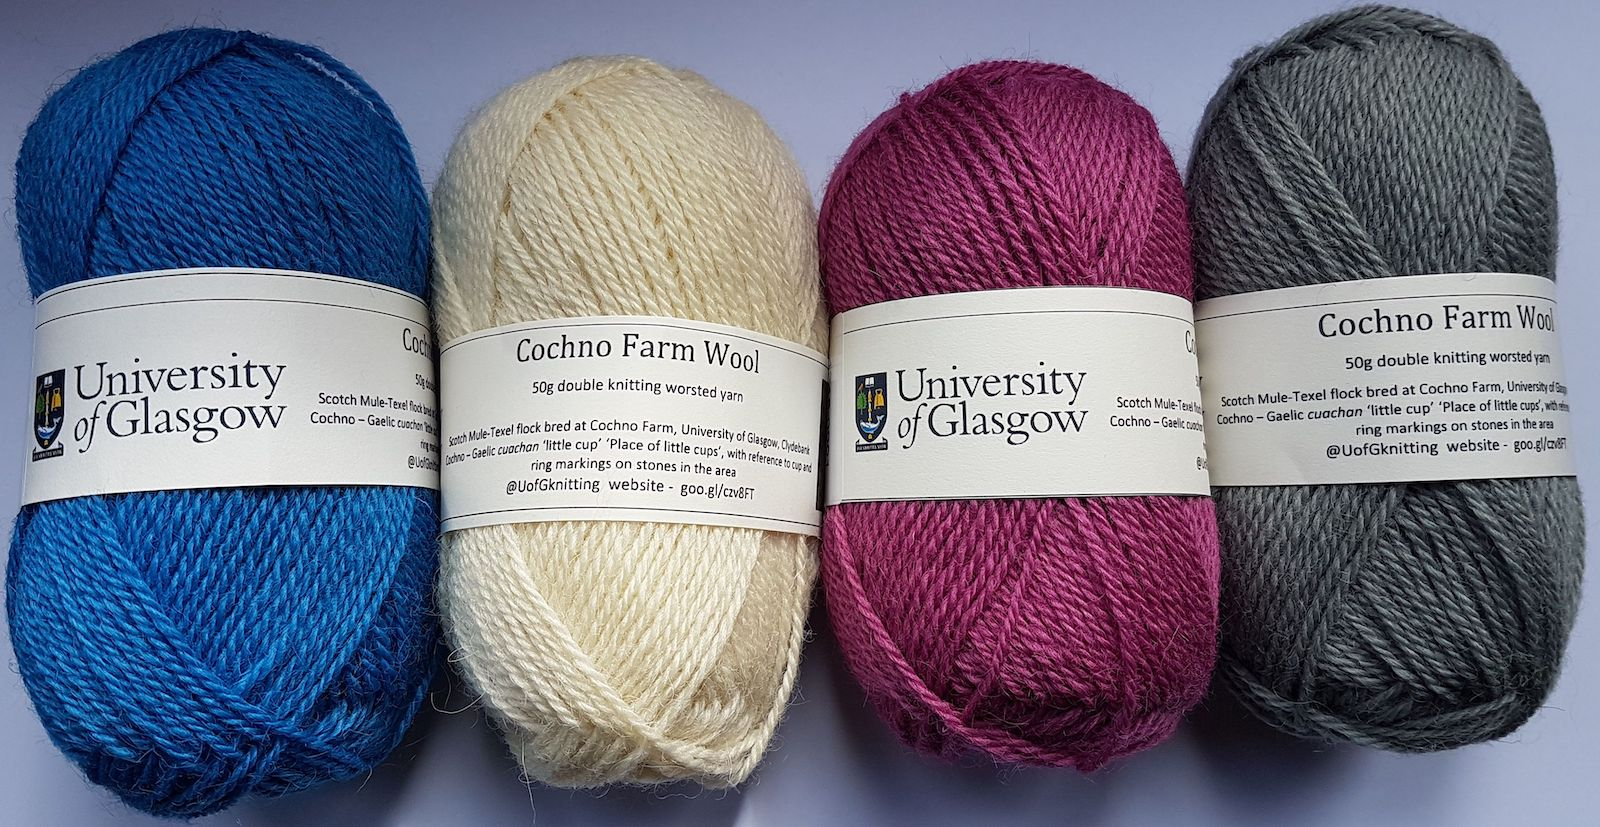 Colour photograph showing balls of Cochno wool in 4 colours – University Blue, Natural, Thistle Pink and Slate Grey (copyright University of Glasgow)